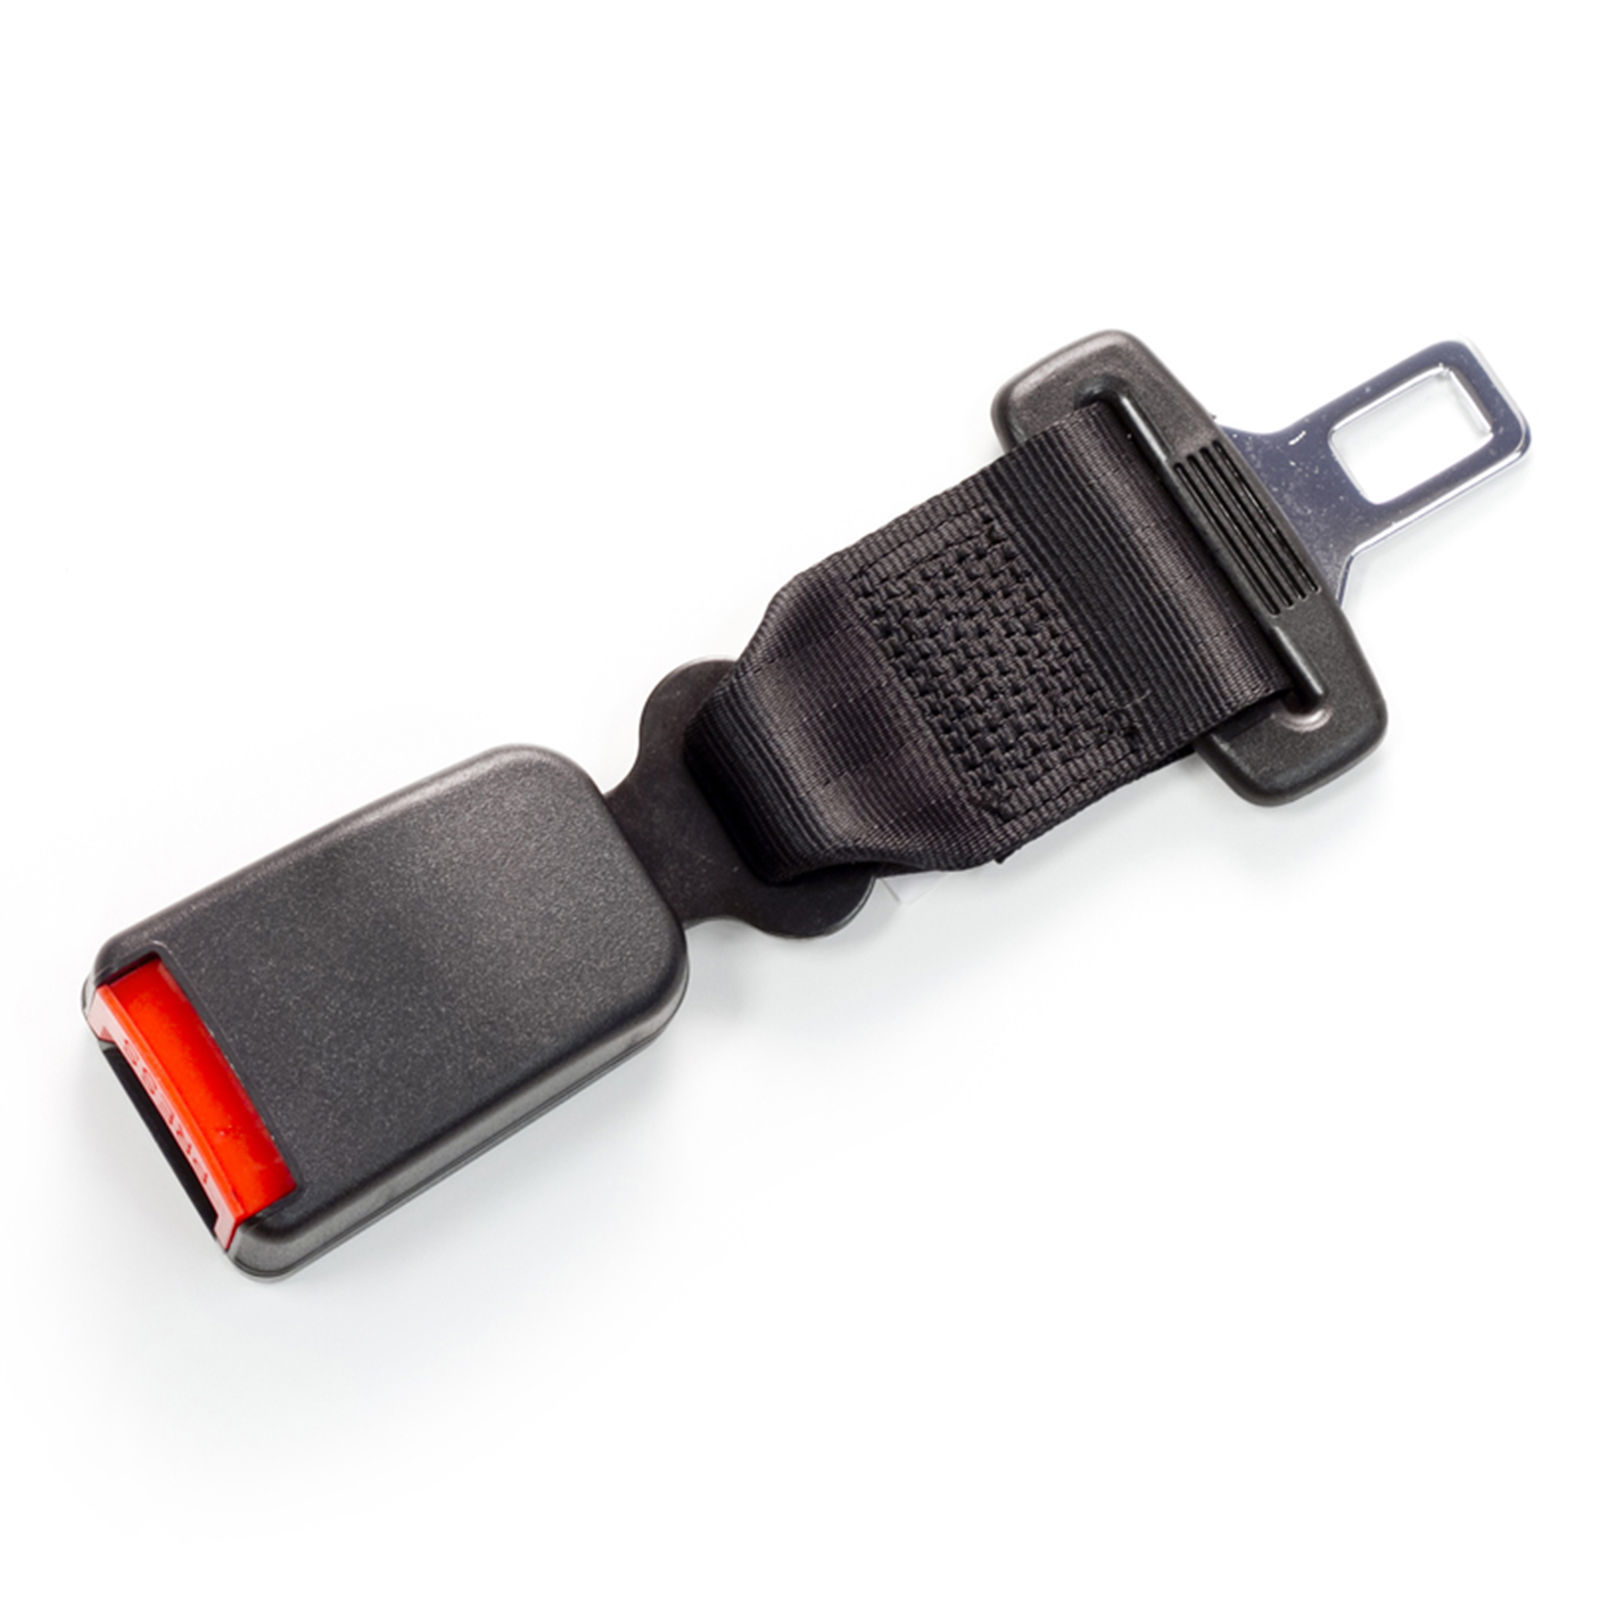 Seat Belt Extension for 2014 Mercedes GL 450 Front Seats - E4 Safety Certified - $17.82